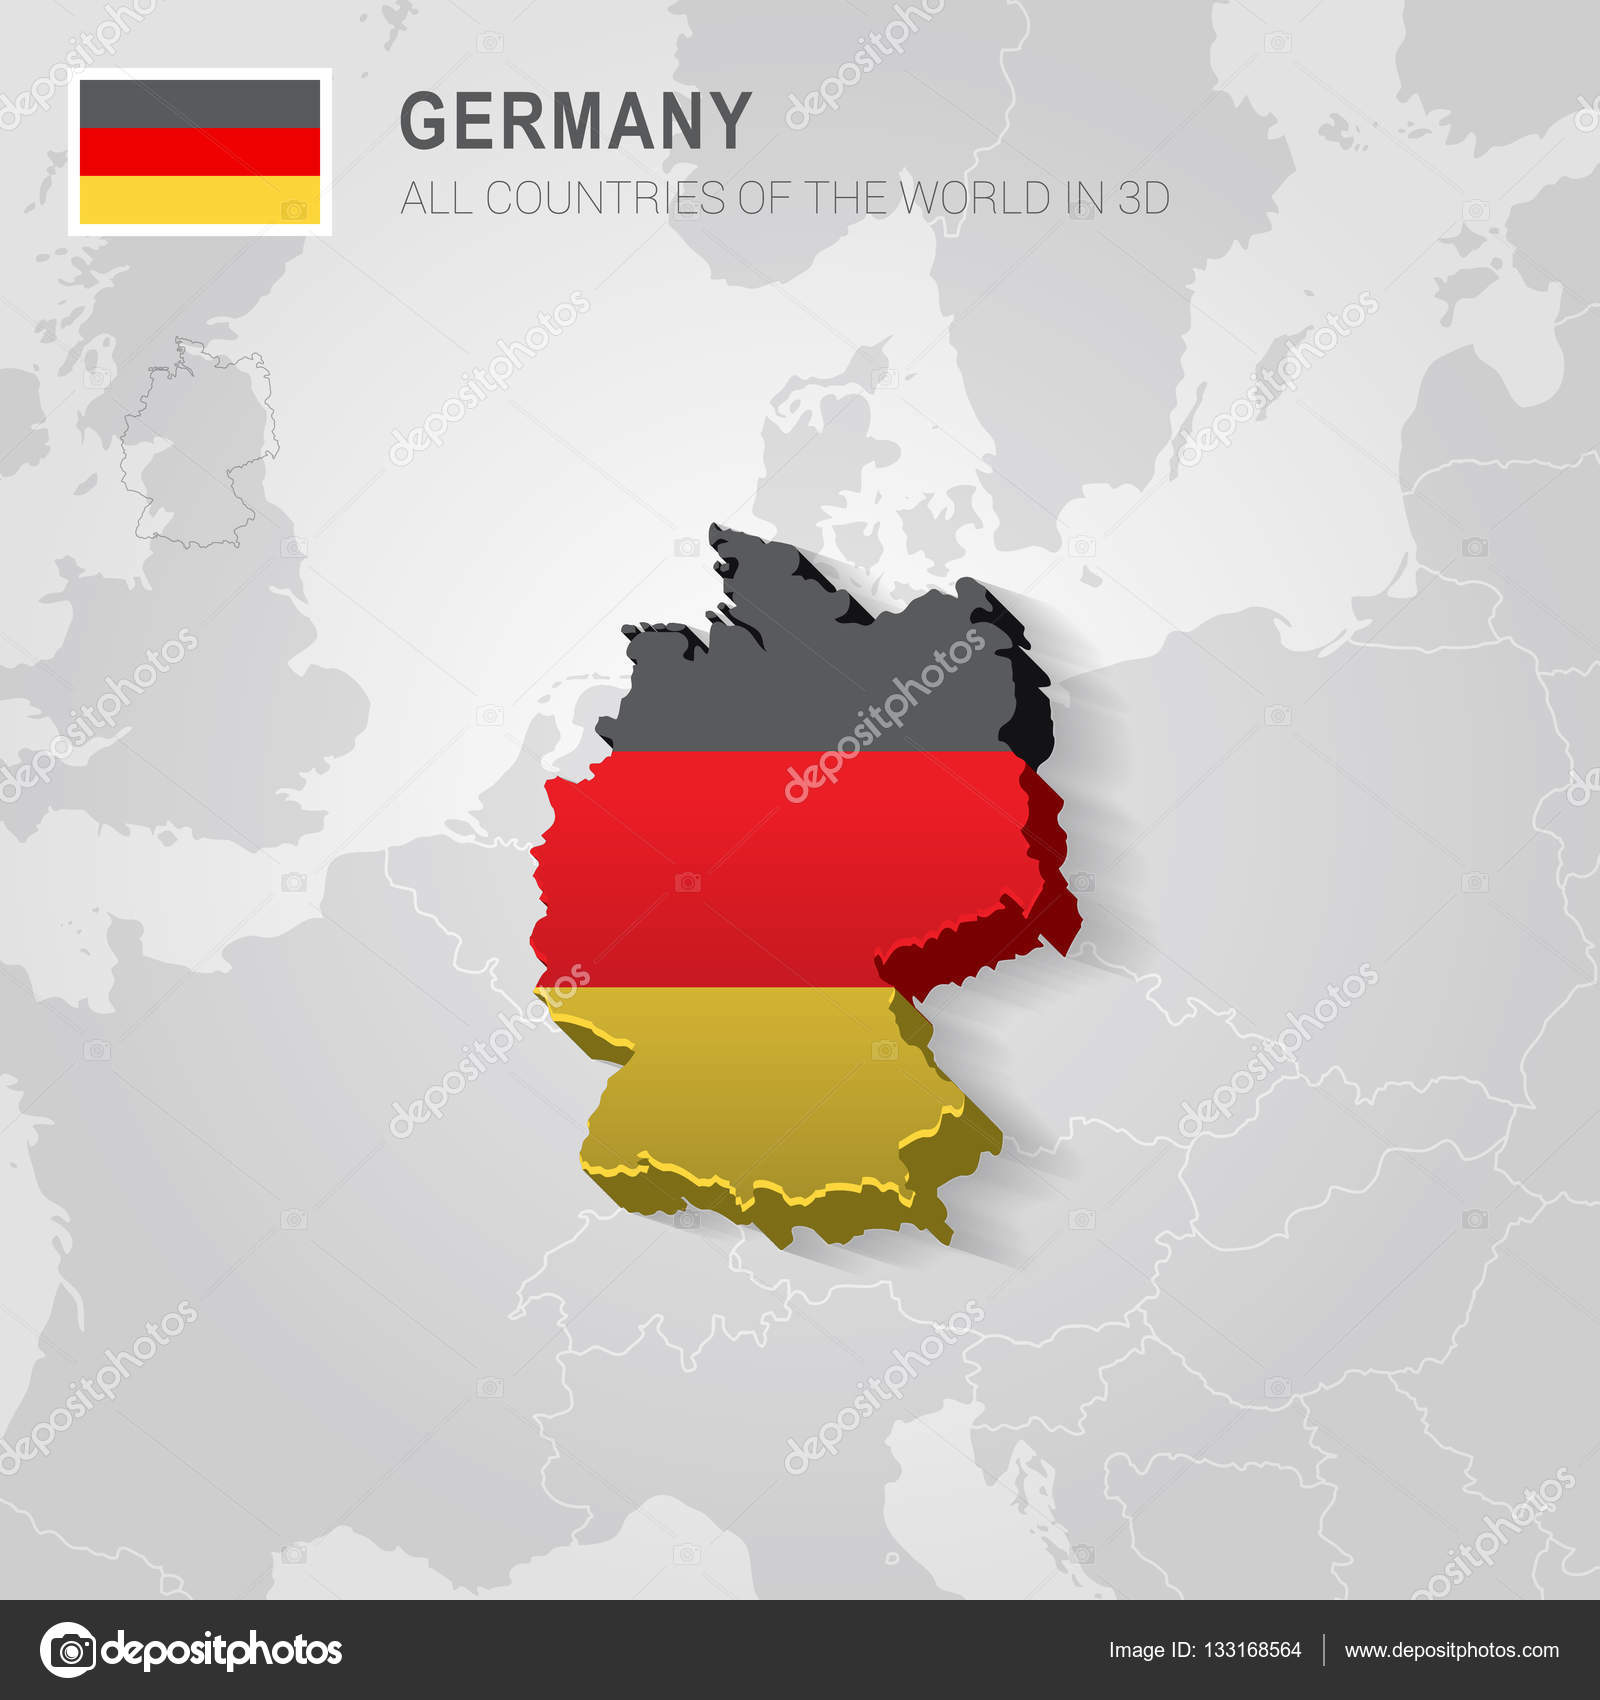 Map Of Germany With Neighbouring Countries.Germany And Neighboring Countries Europe Administrative Map